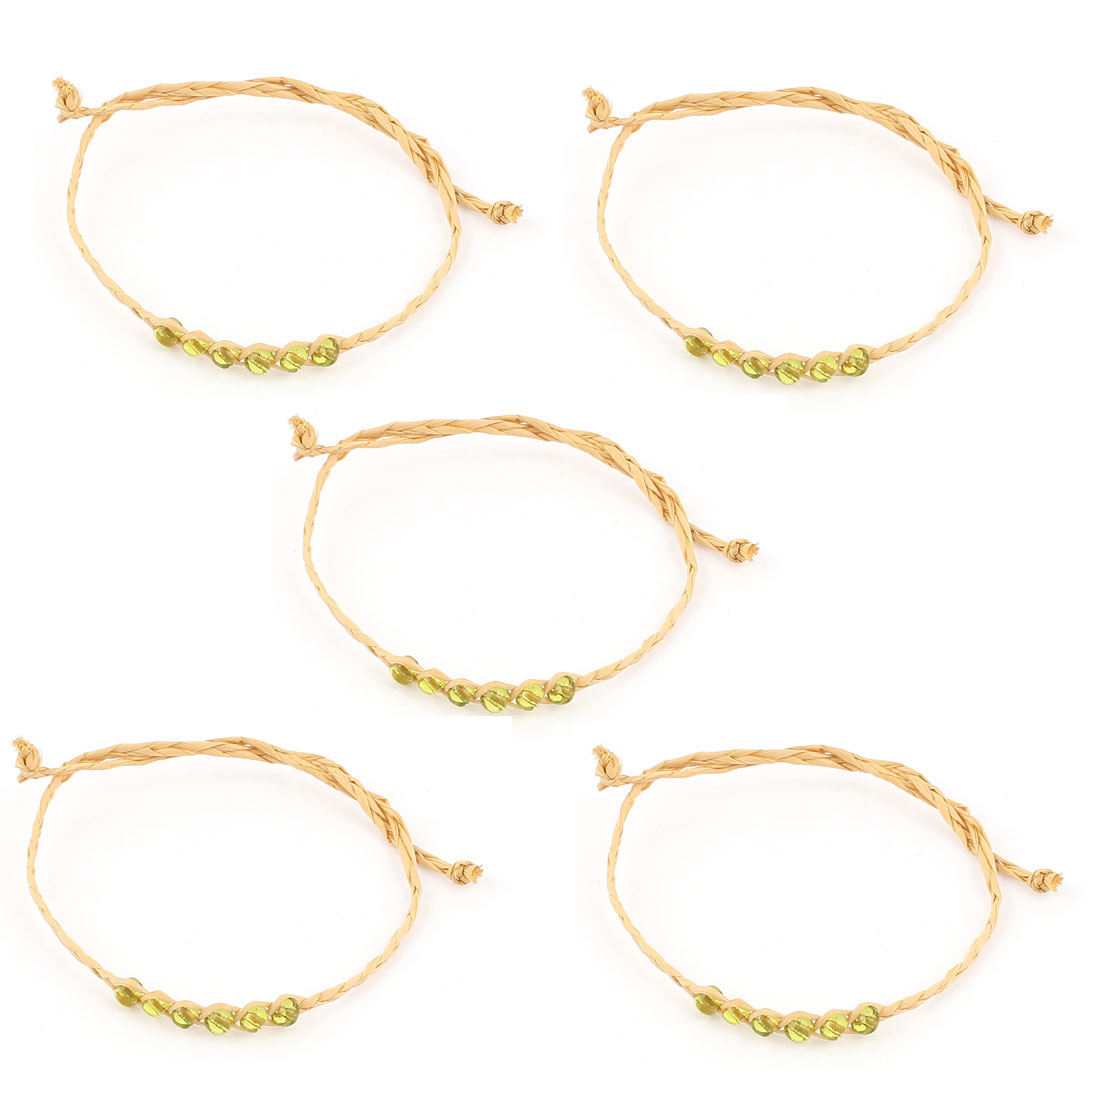 Light Green Beads Decorated Lucky Straw Bracelets Bangle 5 PCS